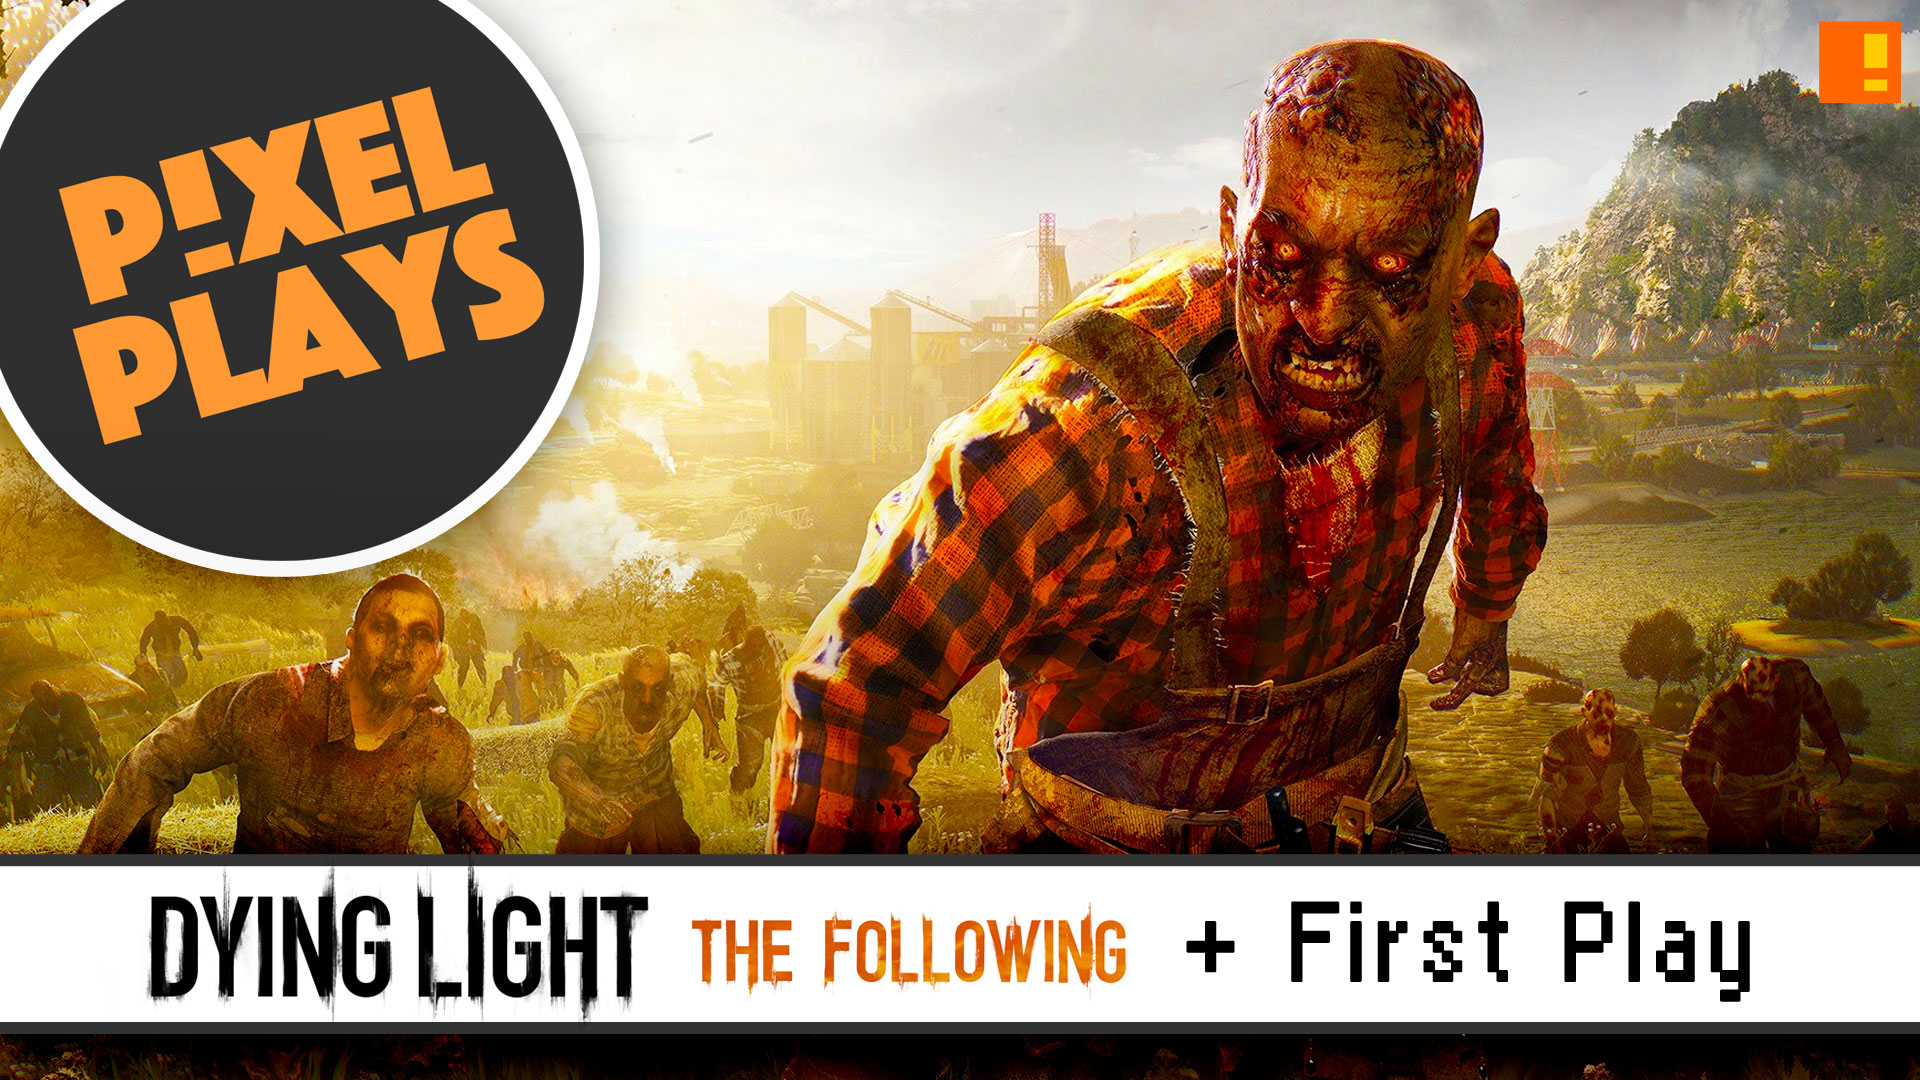 pixel plays, dying light, the following, entertainment on tap, the action pixel